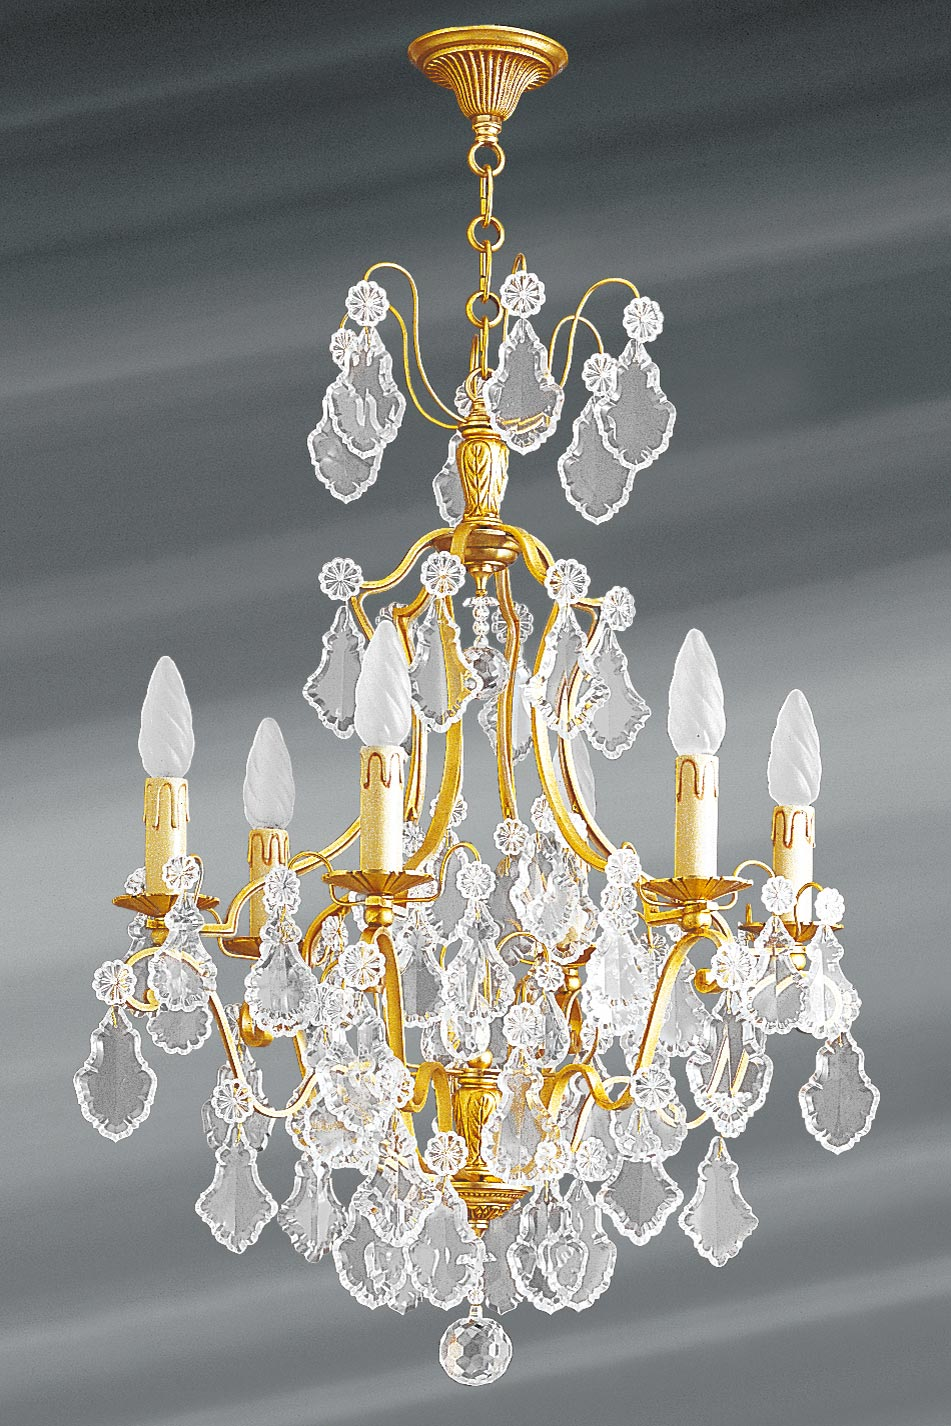 Bohemian Crystal 6 Lights Louis Xv Chandelier Lucien Gau Massive